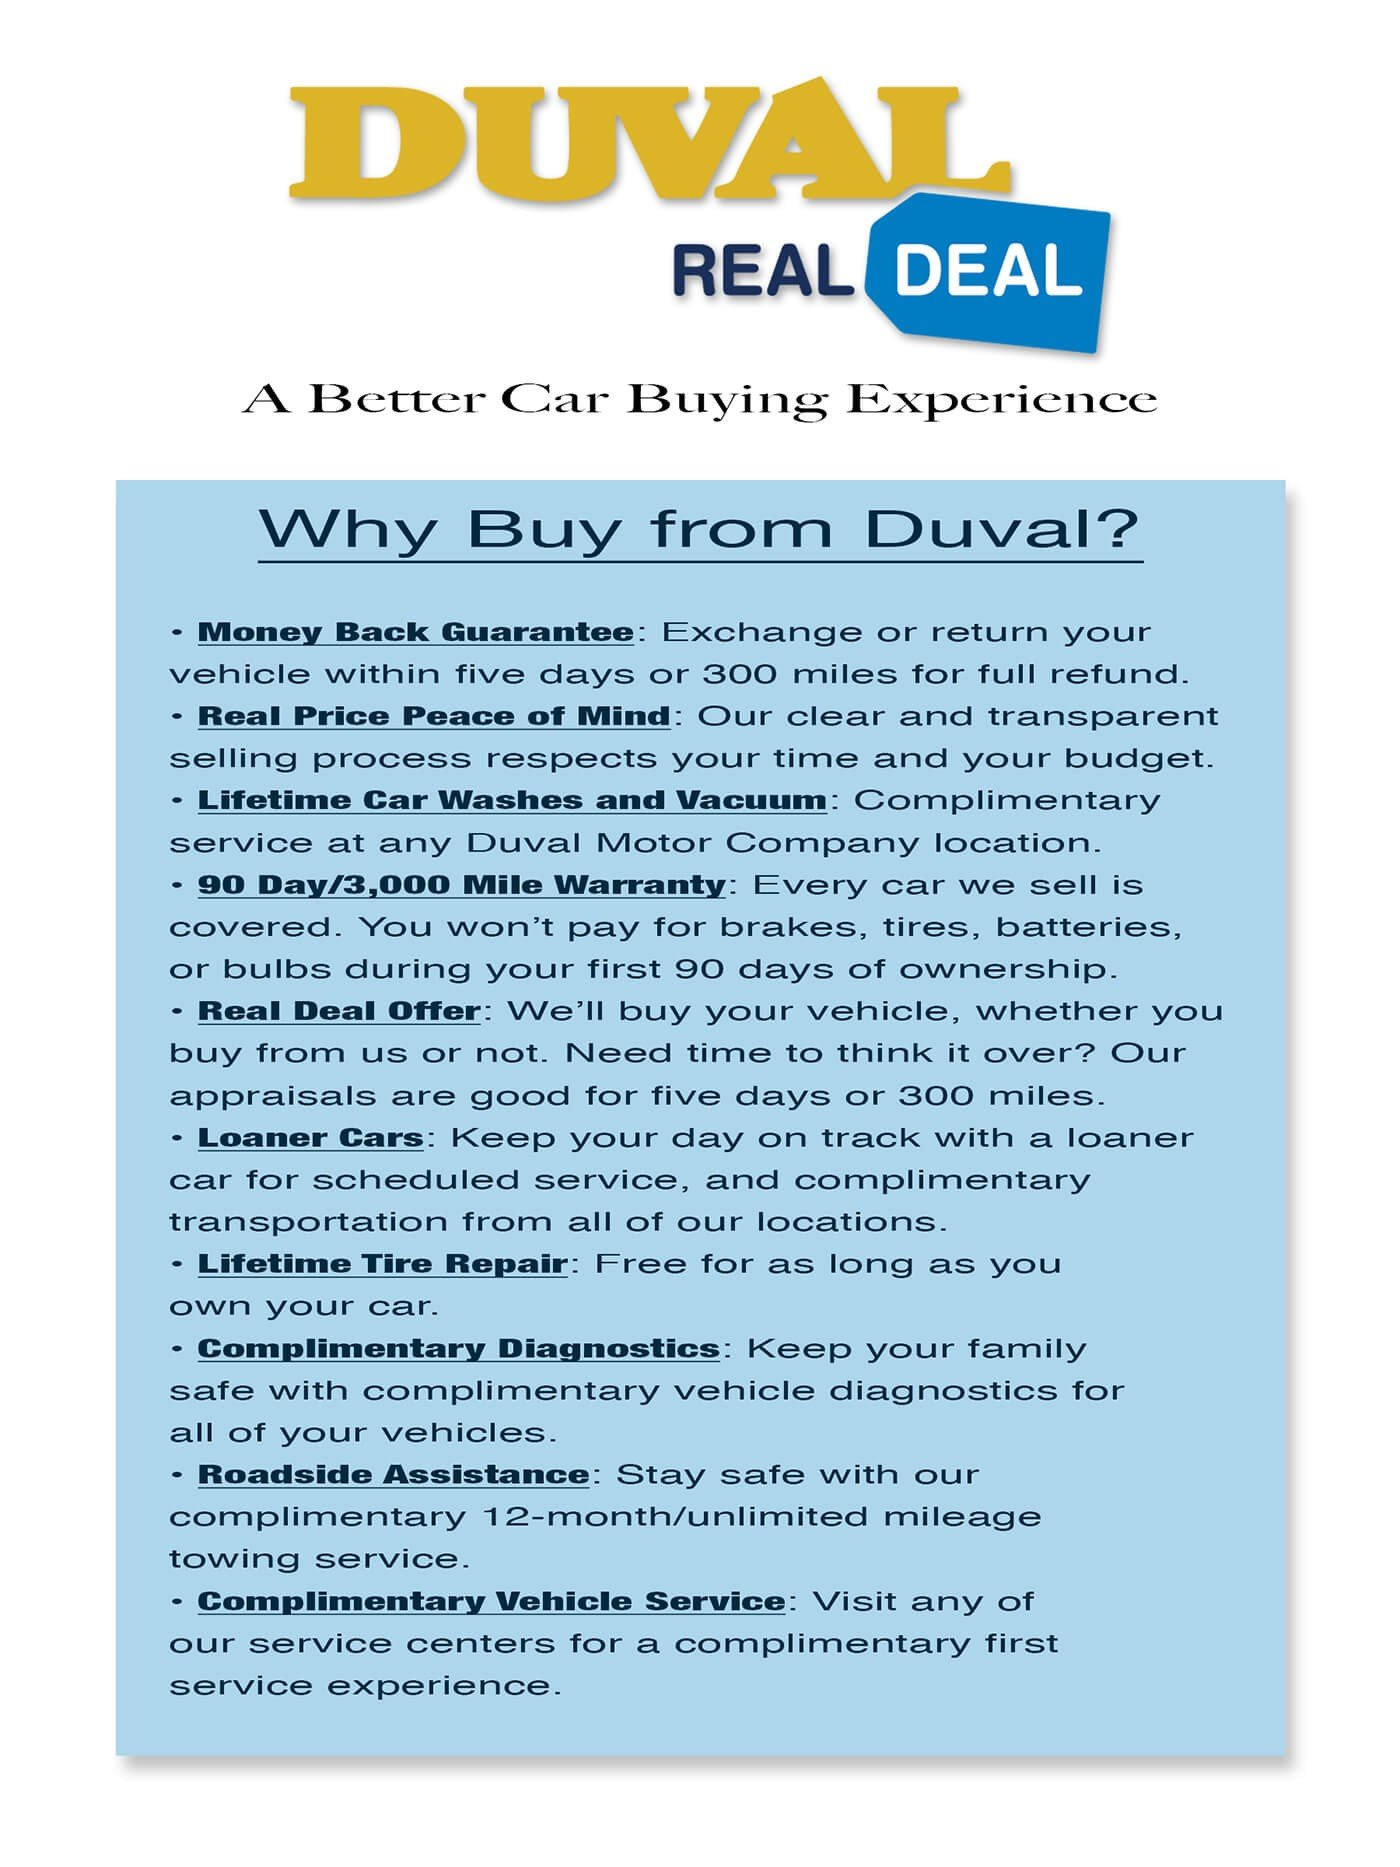 Why Buy from Duval?